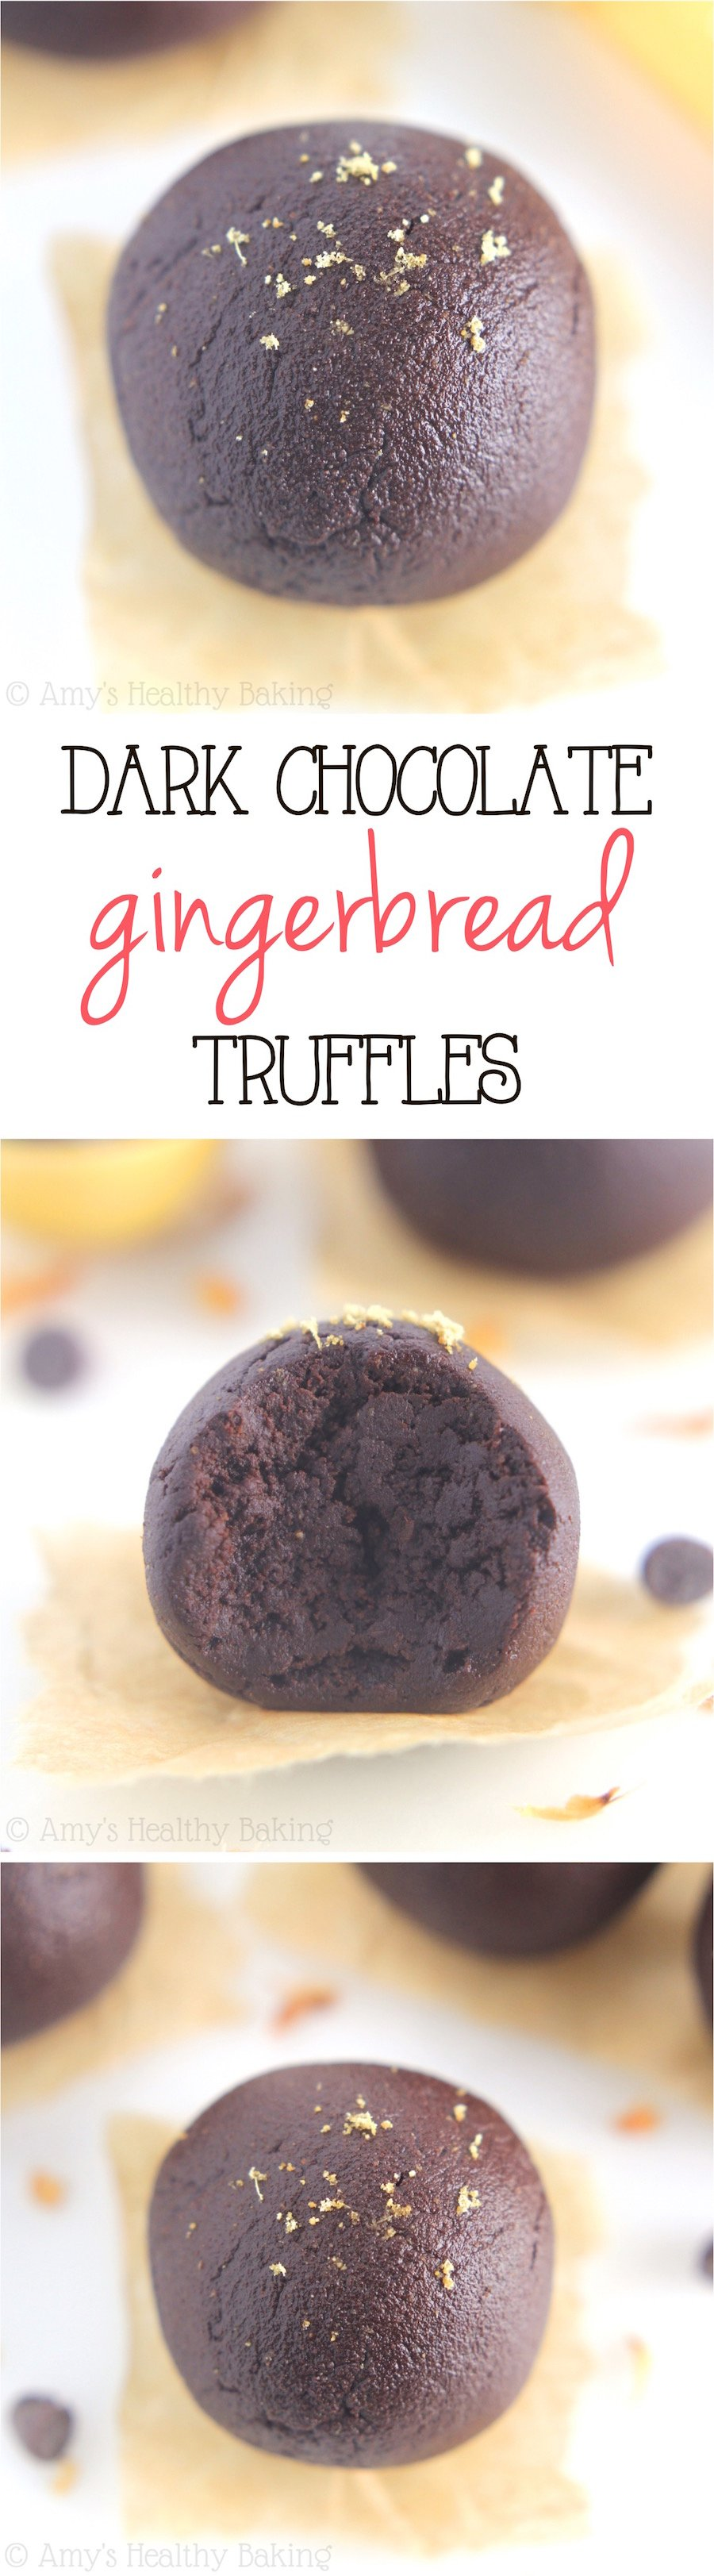 Dark Chocolate Gingerbread Truffles -- the easiest truffles you'll ever make! Only 5 ingredients & 29 calories!